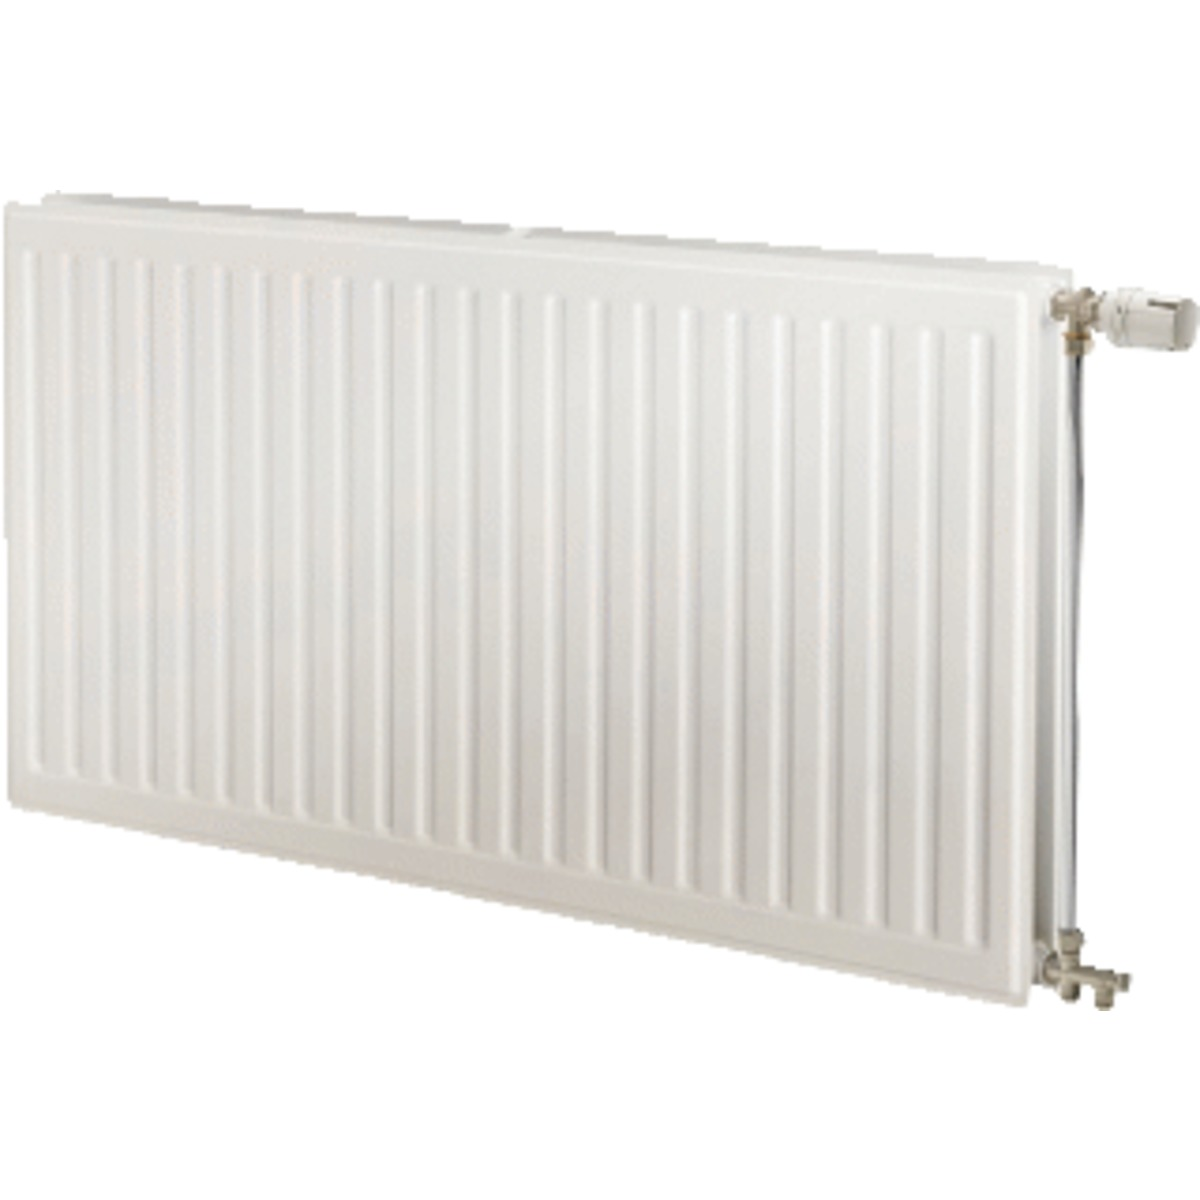 Radson Cld Radiator.Radson Cld Radiator Paneel H50xd17 2xl150cm 1888 5w Staal Wit